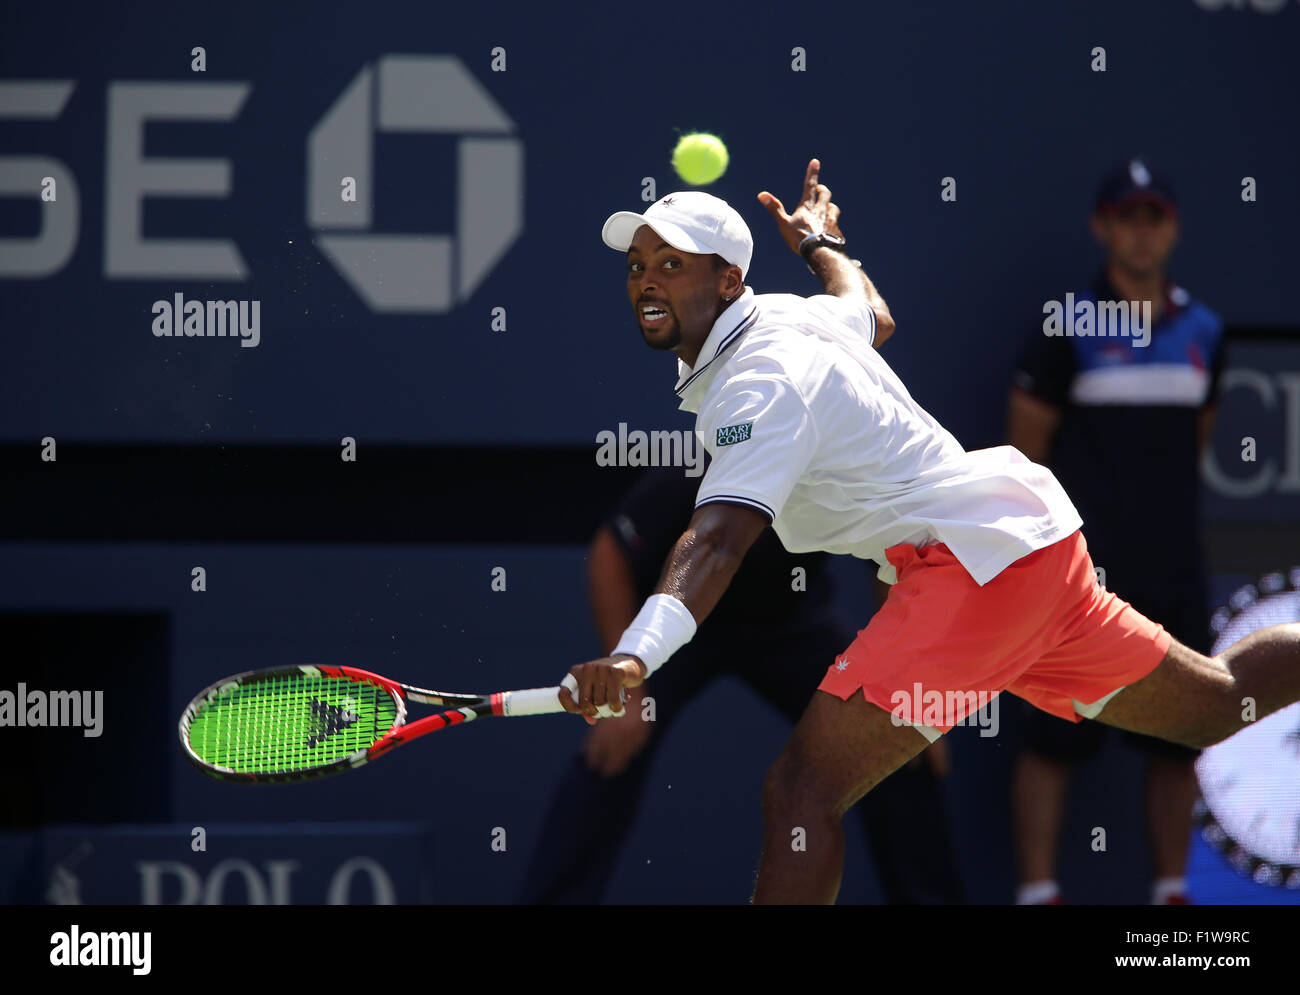 New York, USA. 7th September, 2015. Donald Young of the United States in action against Stan Wawrinka  during their - Stock Image